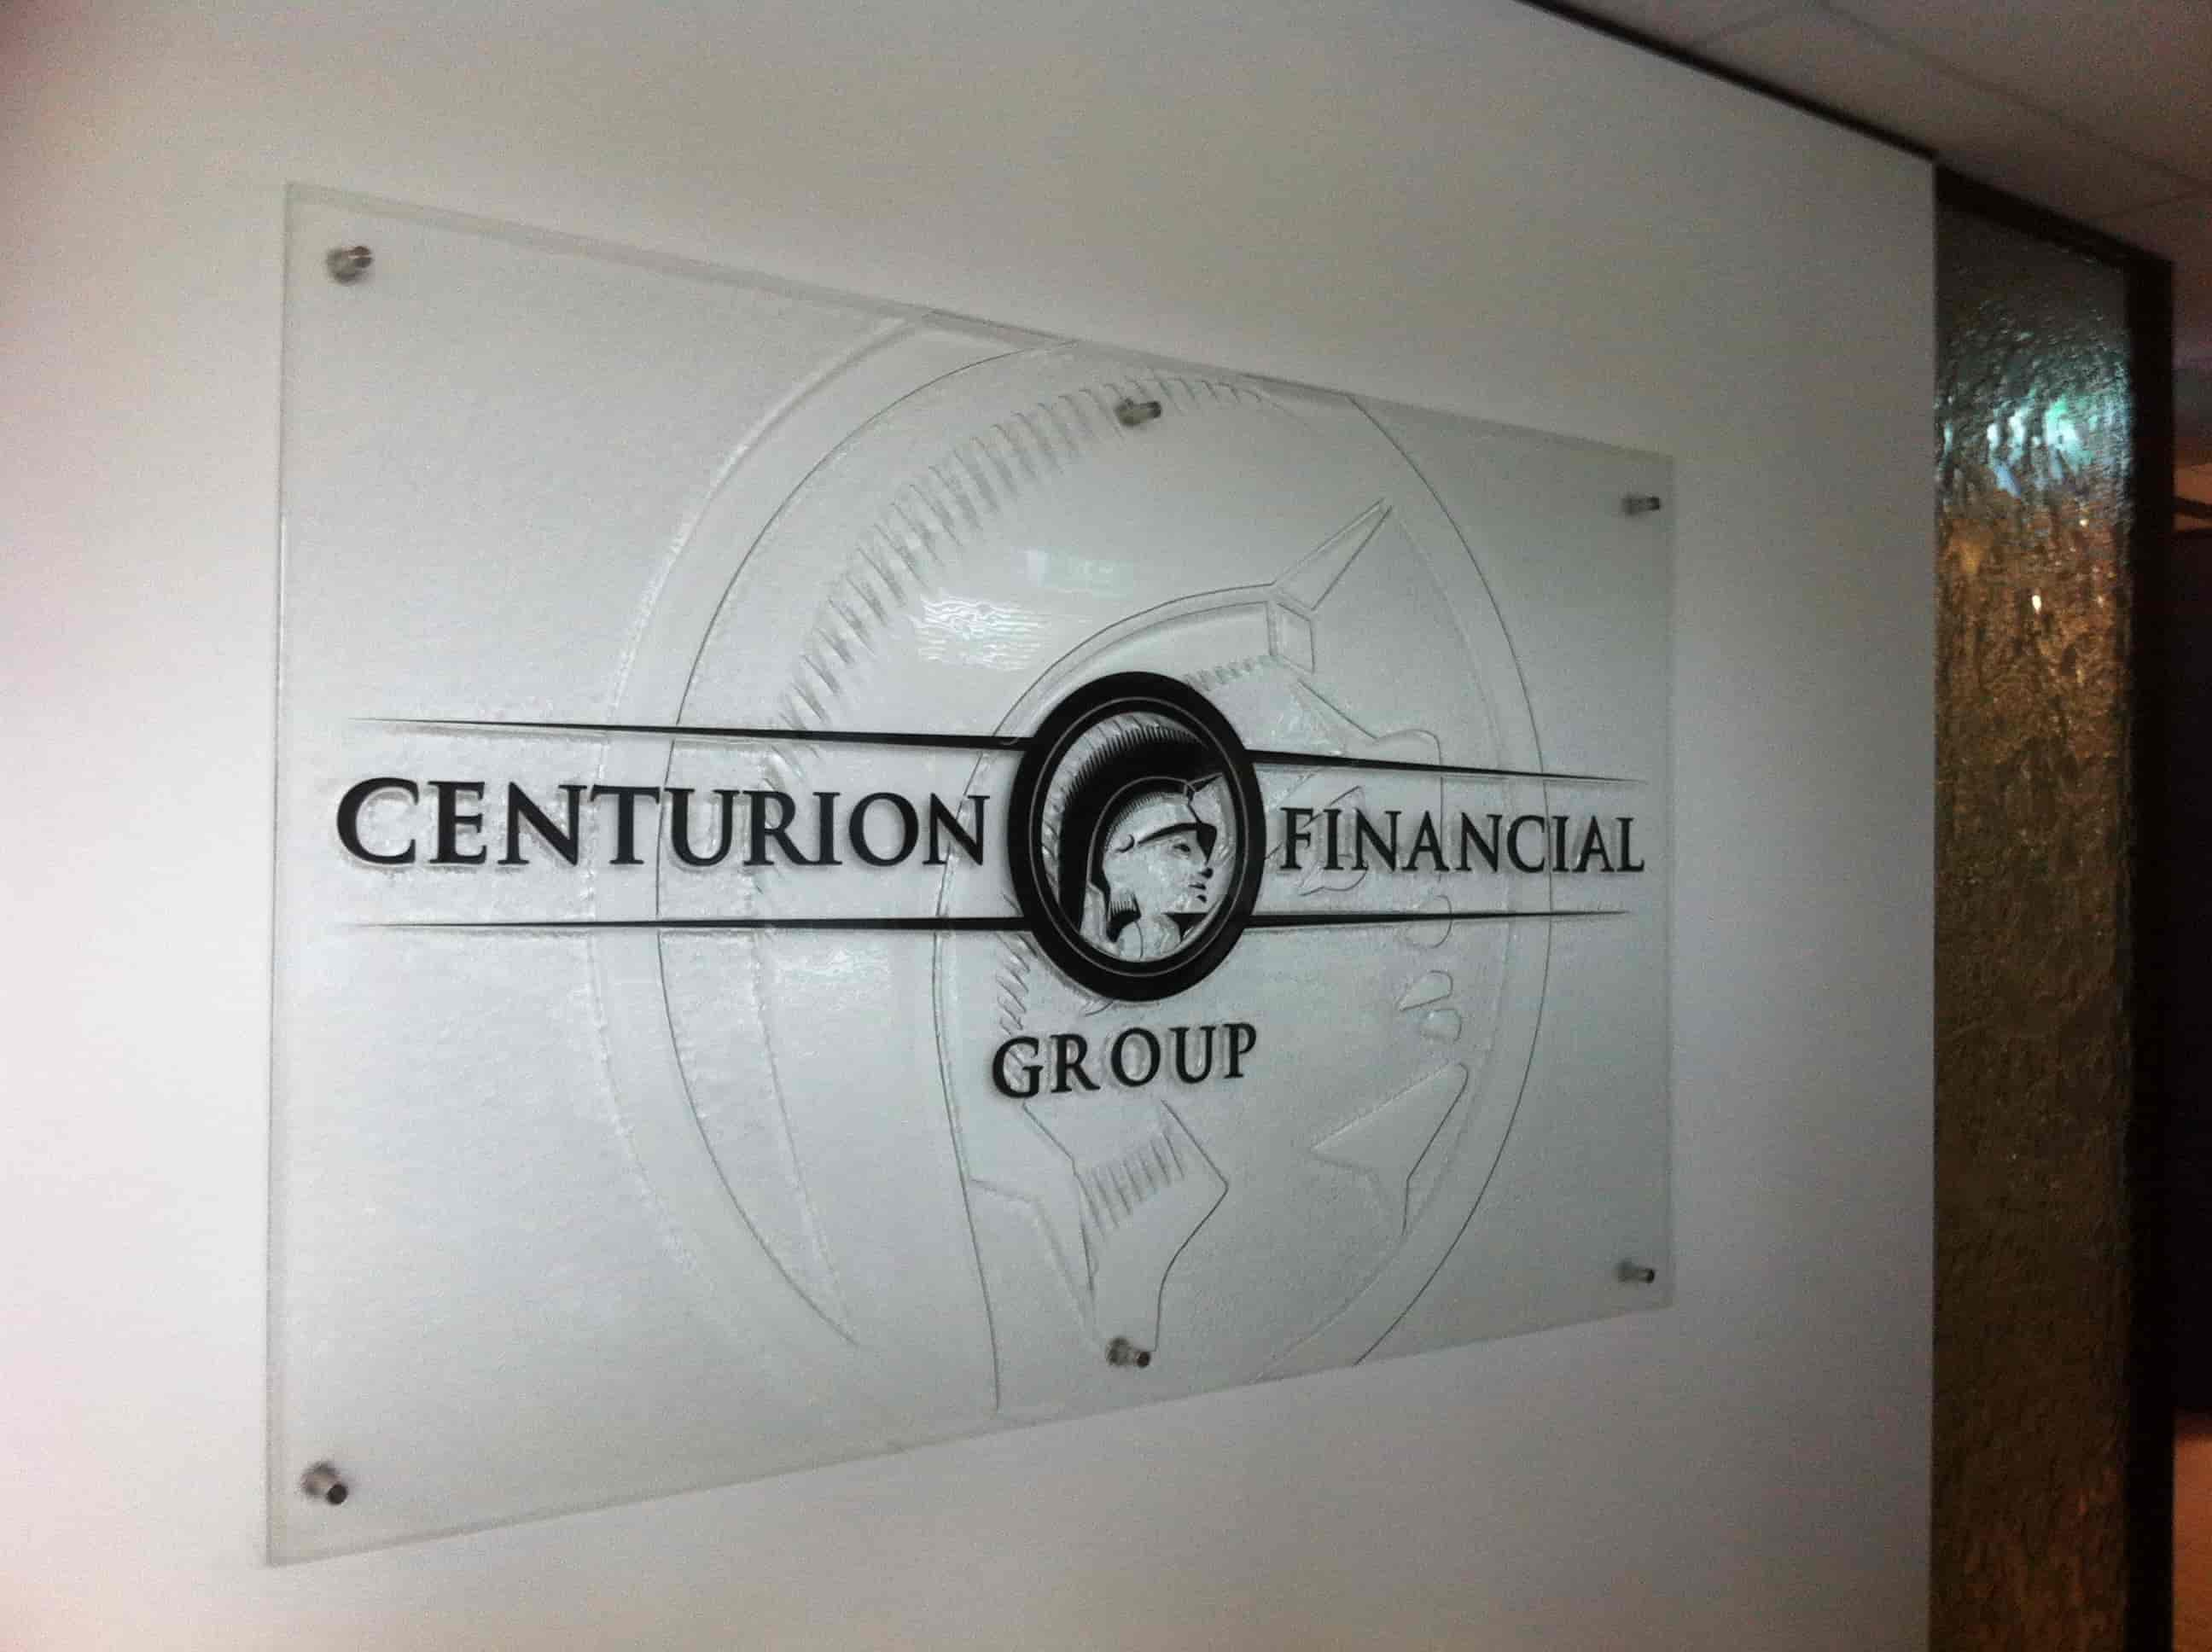 Reception signage for centurion financial group